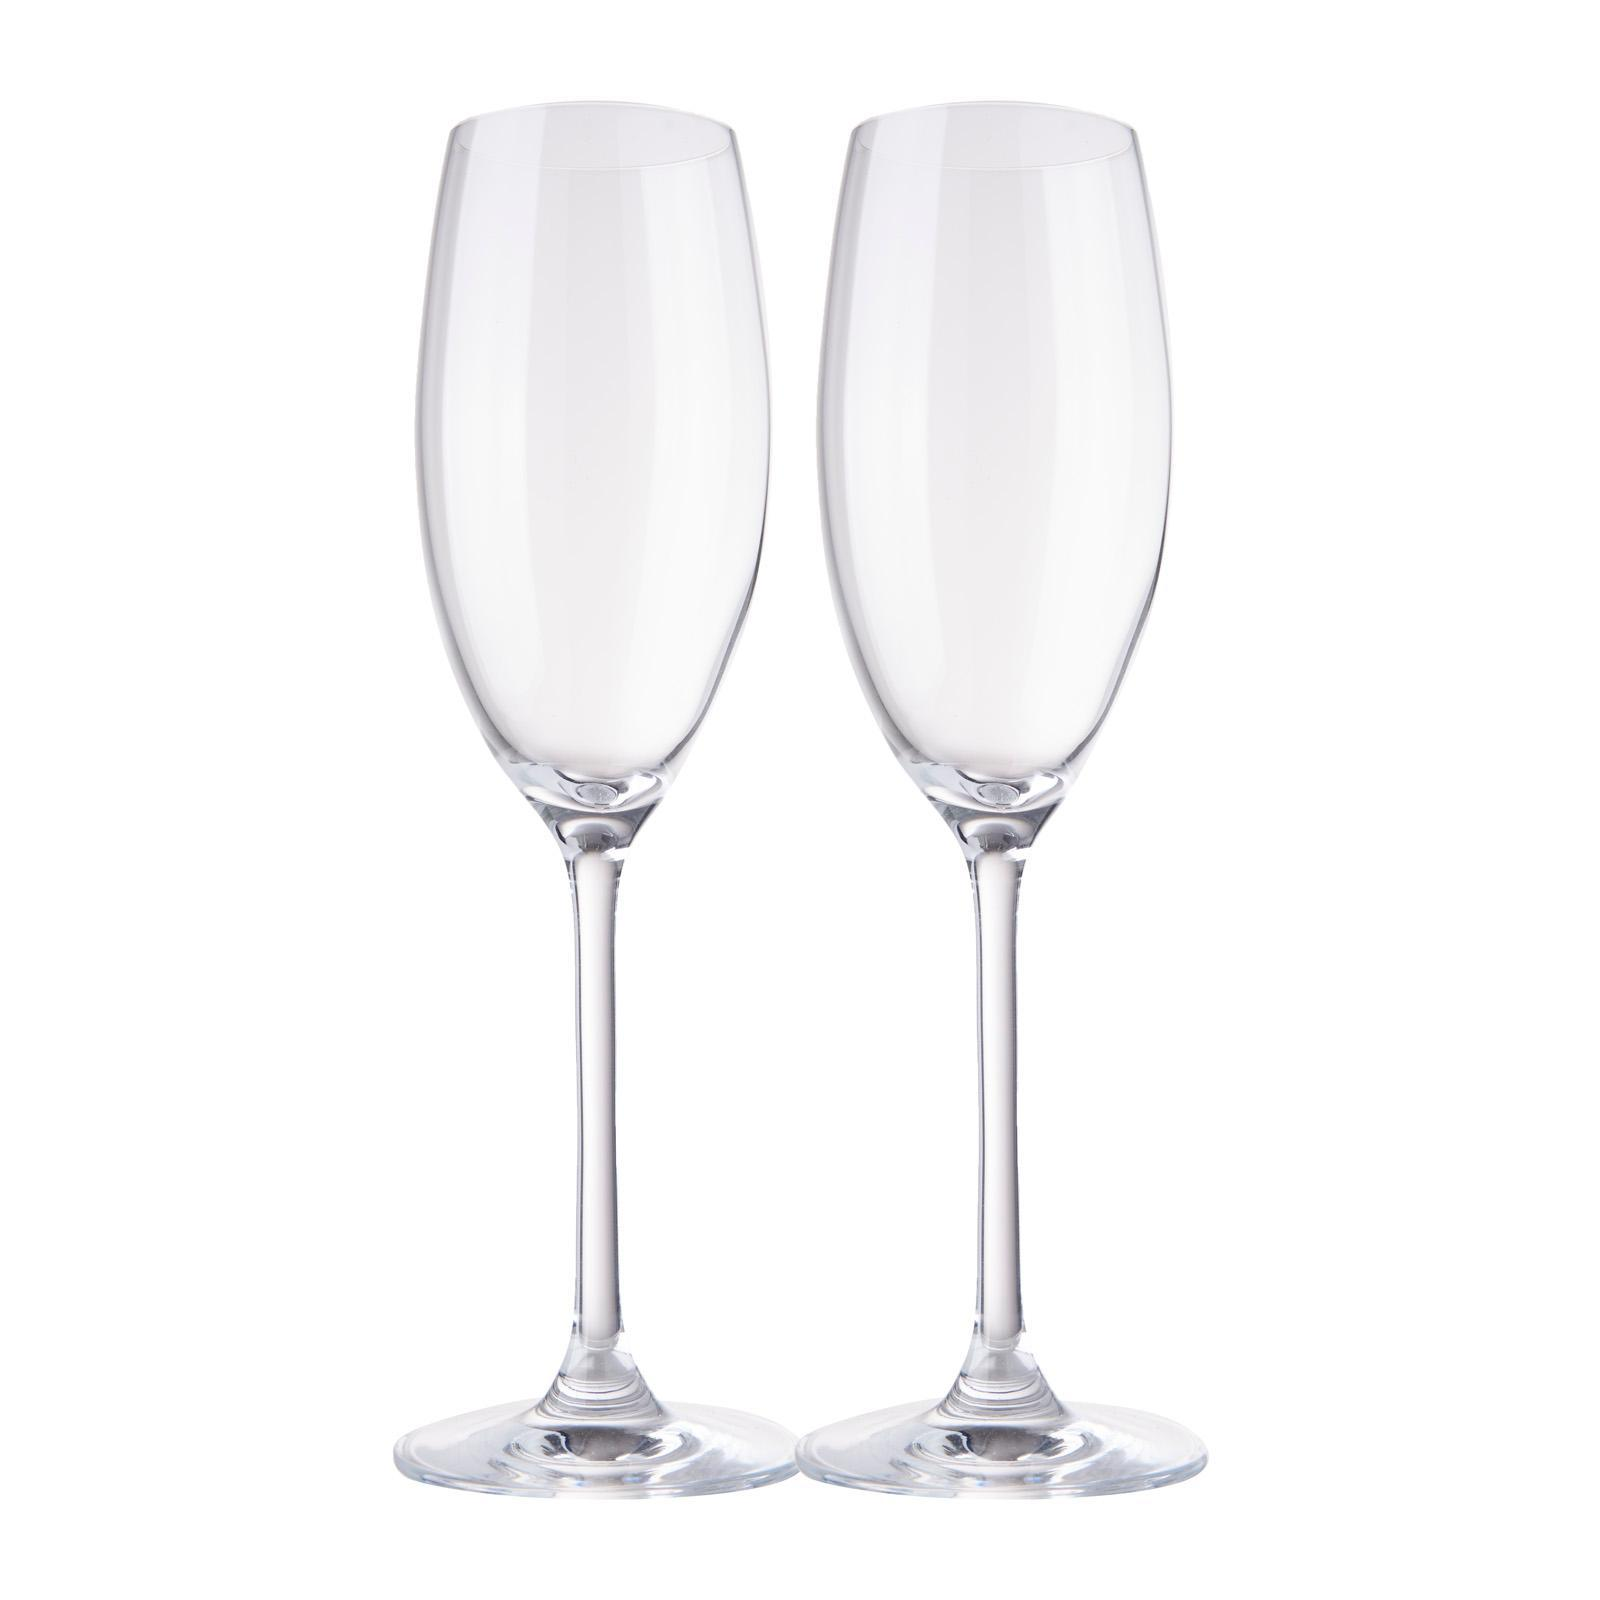 Plumm Crystal Wine Glasses - Vintage Sparkling (2 Glasses) - Le Vigne